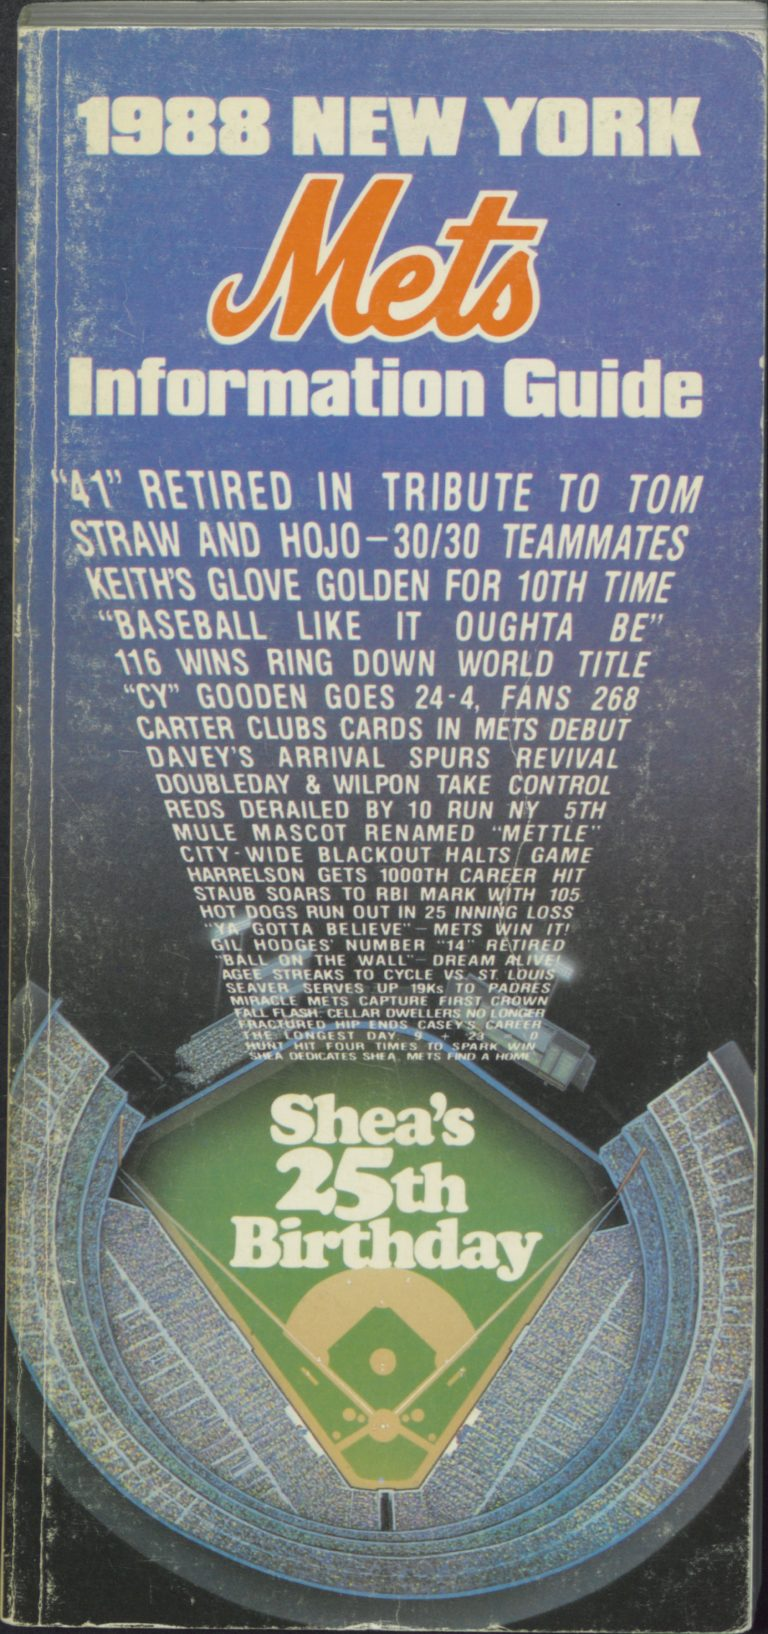 1988 Information Guide: Shea's 25th Birthday